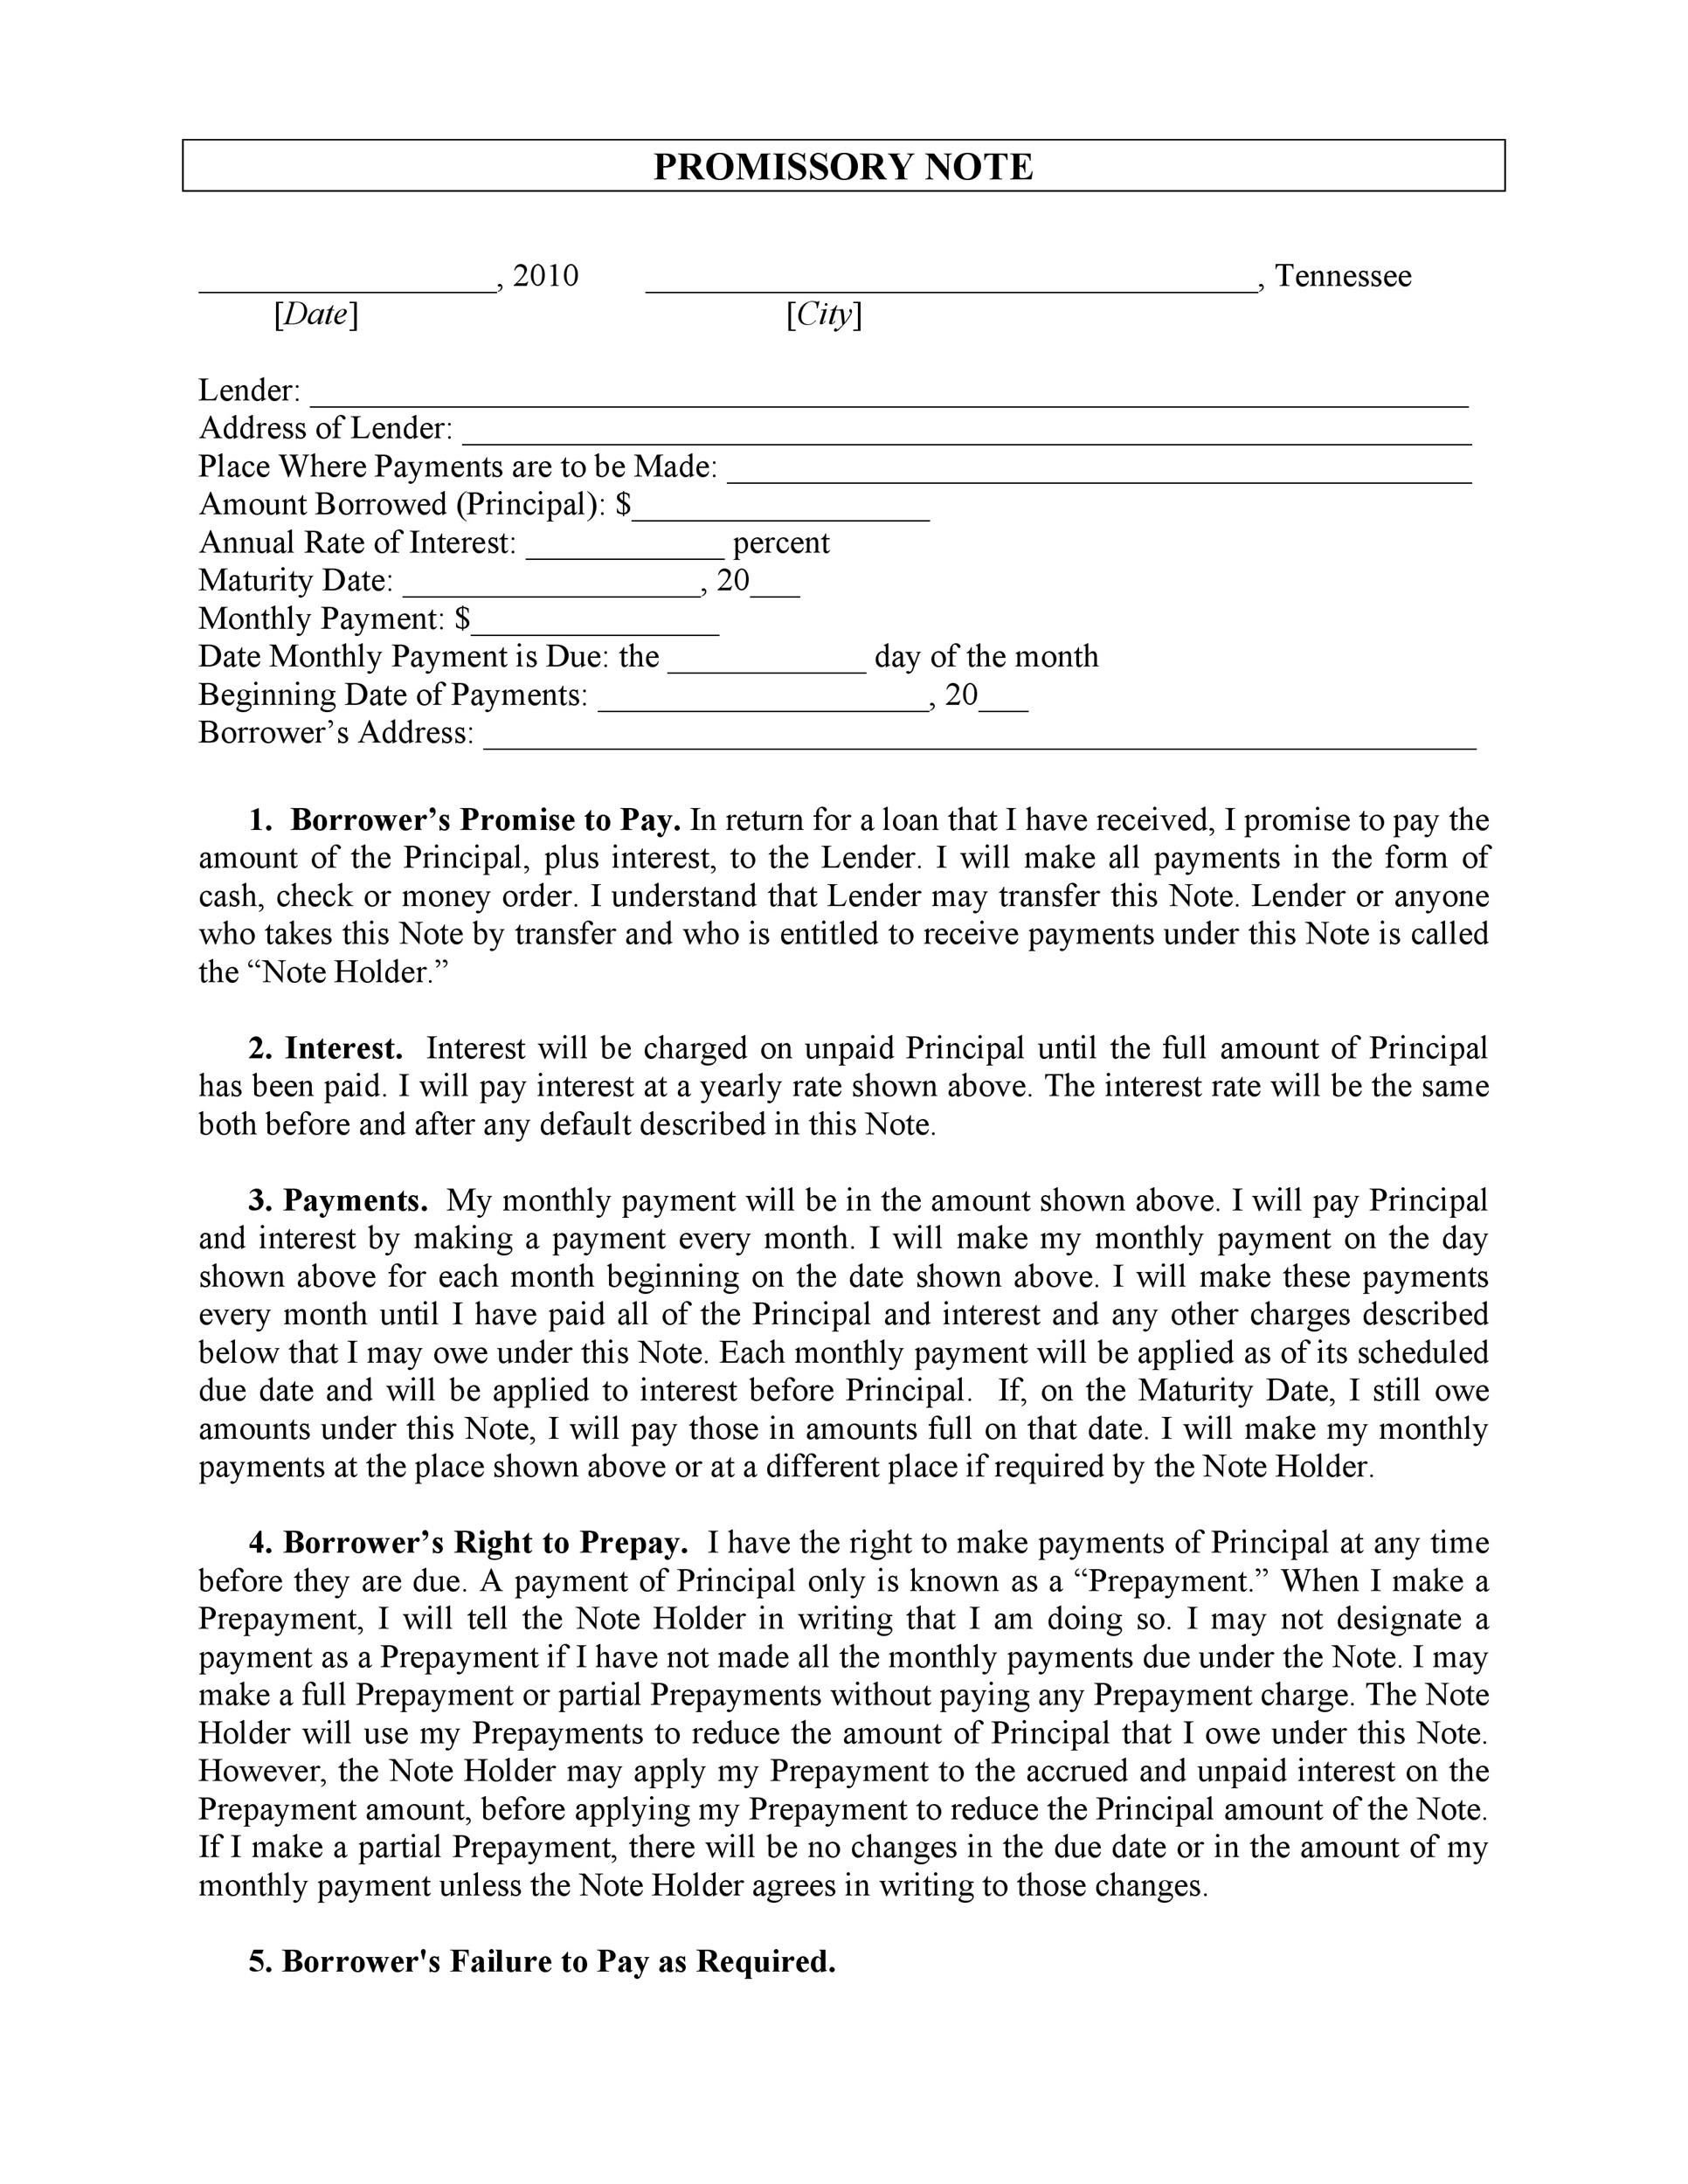 Printable Promissory Note Template 27 Intended For Promise To Pay Template